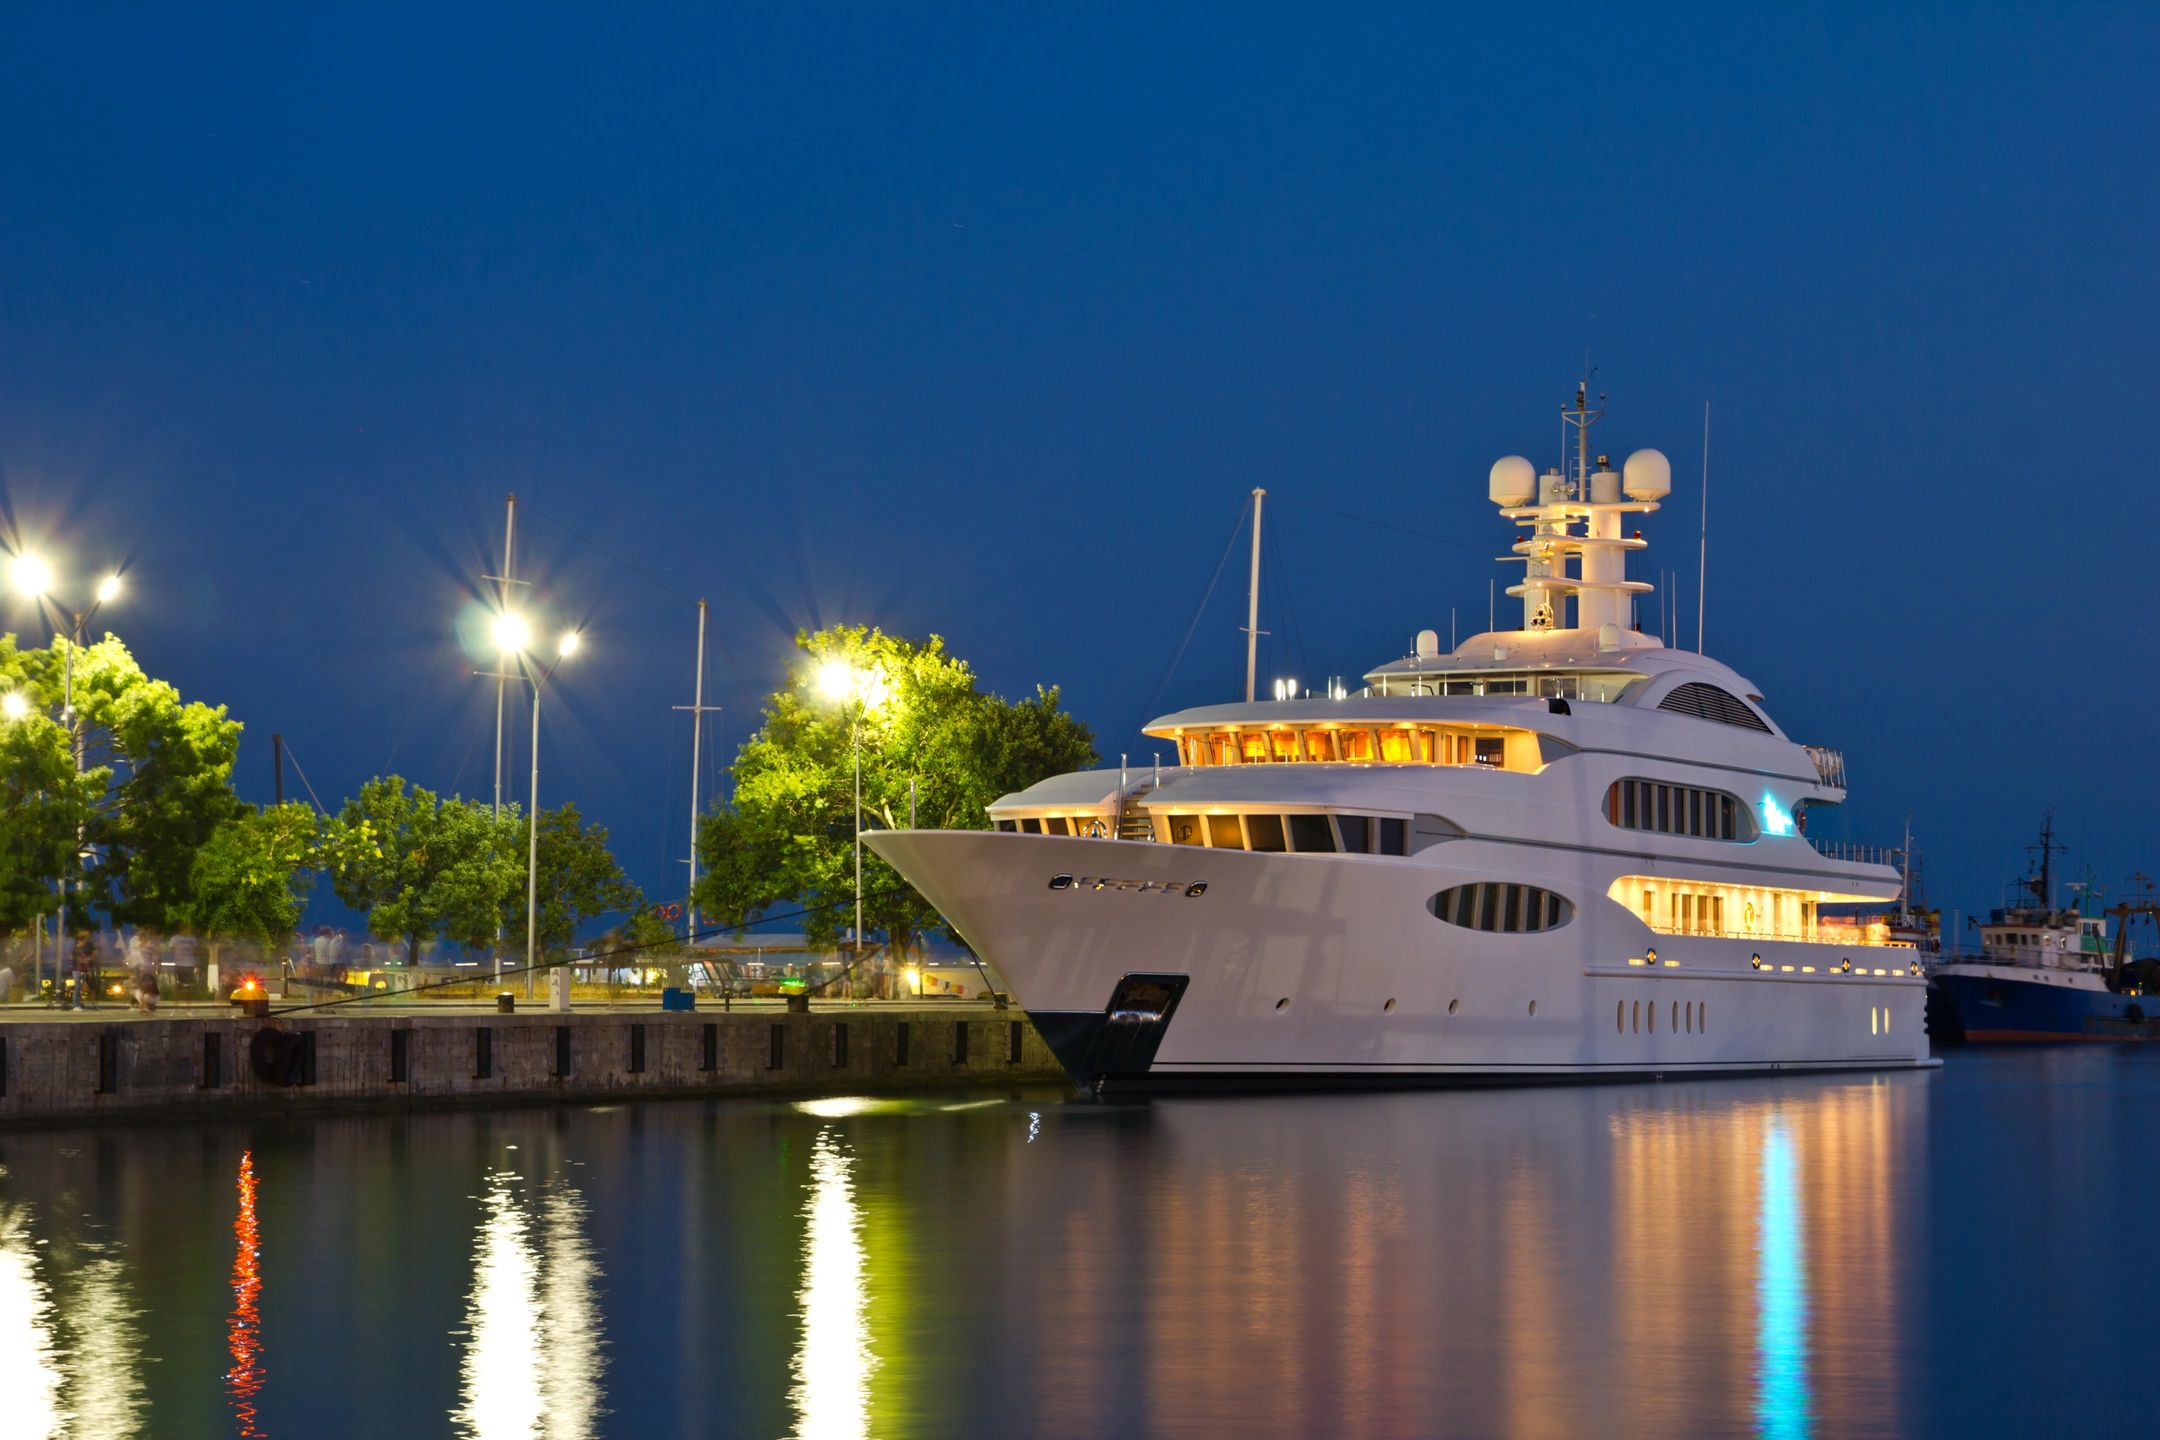 MY STORY AND TIPS FOR YACHTING